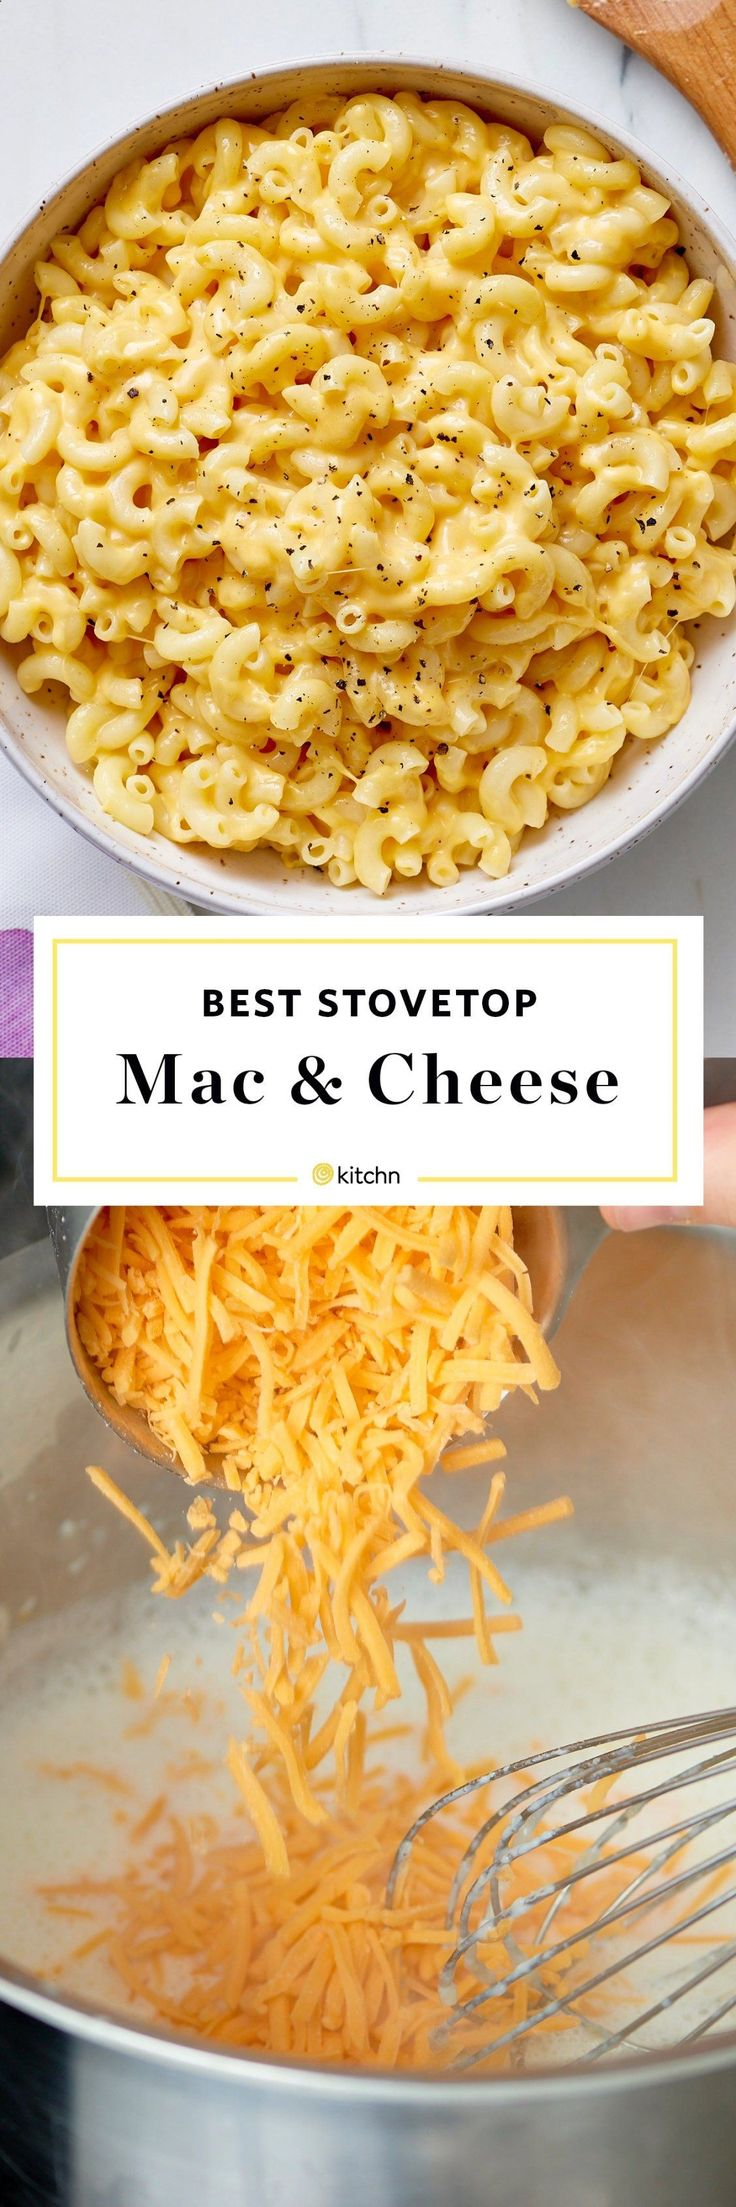 Best Stove Top Mac and Cheese Recipe. What cook doesnt go in search of the best macaroni and cheese recipe on the internet? Well, to keep it simple, this pasta recipe shows you how to make the best mac and cheese on the stovetop. This recipe is easy to make for a quick weeknight dinner. Youll need dried short pasta, whole or 2% milk, all-purpose flour, kosher salt, powdered mustard and shredded cheese, such as cheddar, Monterey Jack, or Colby.